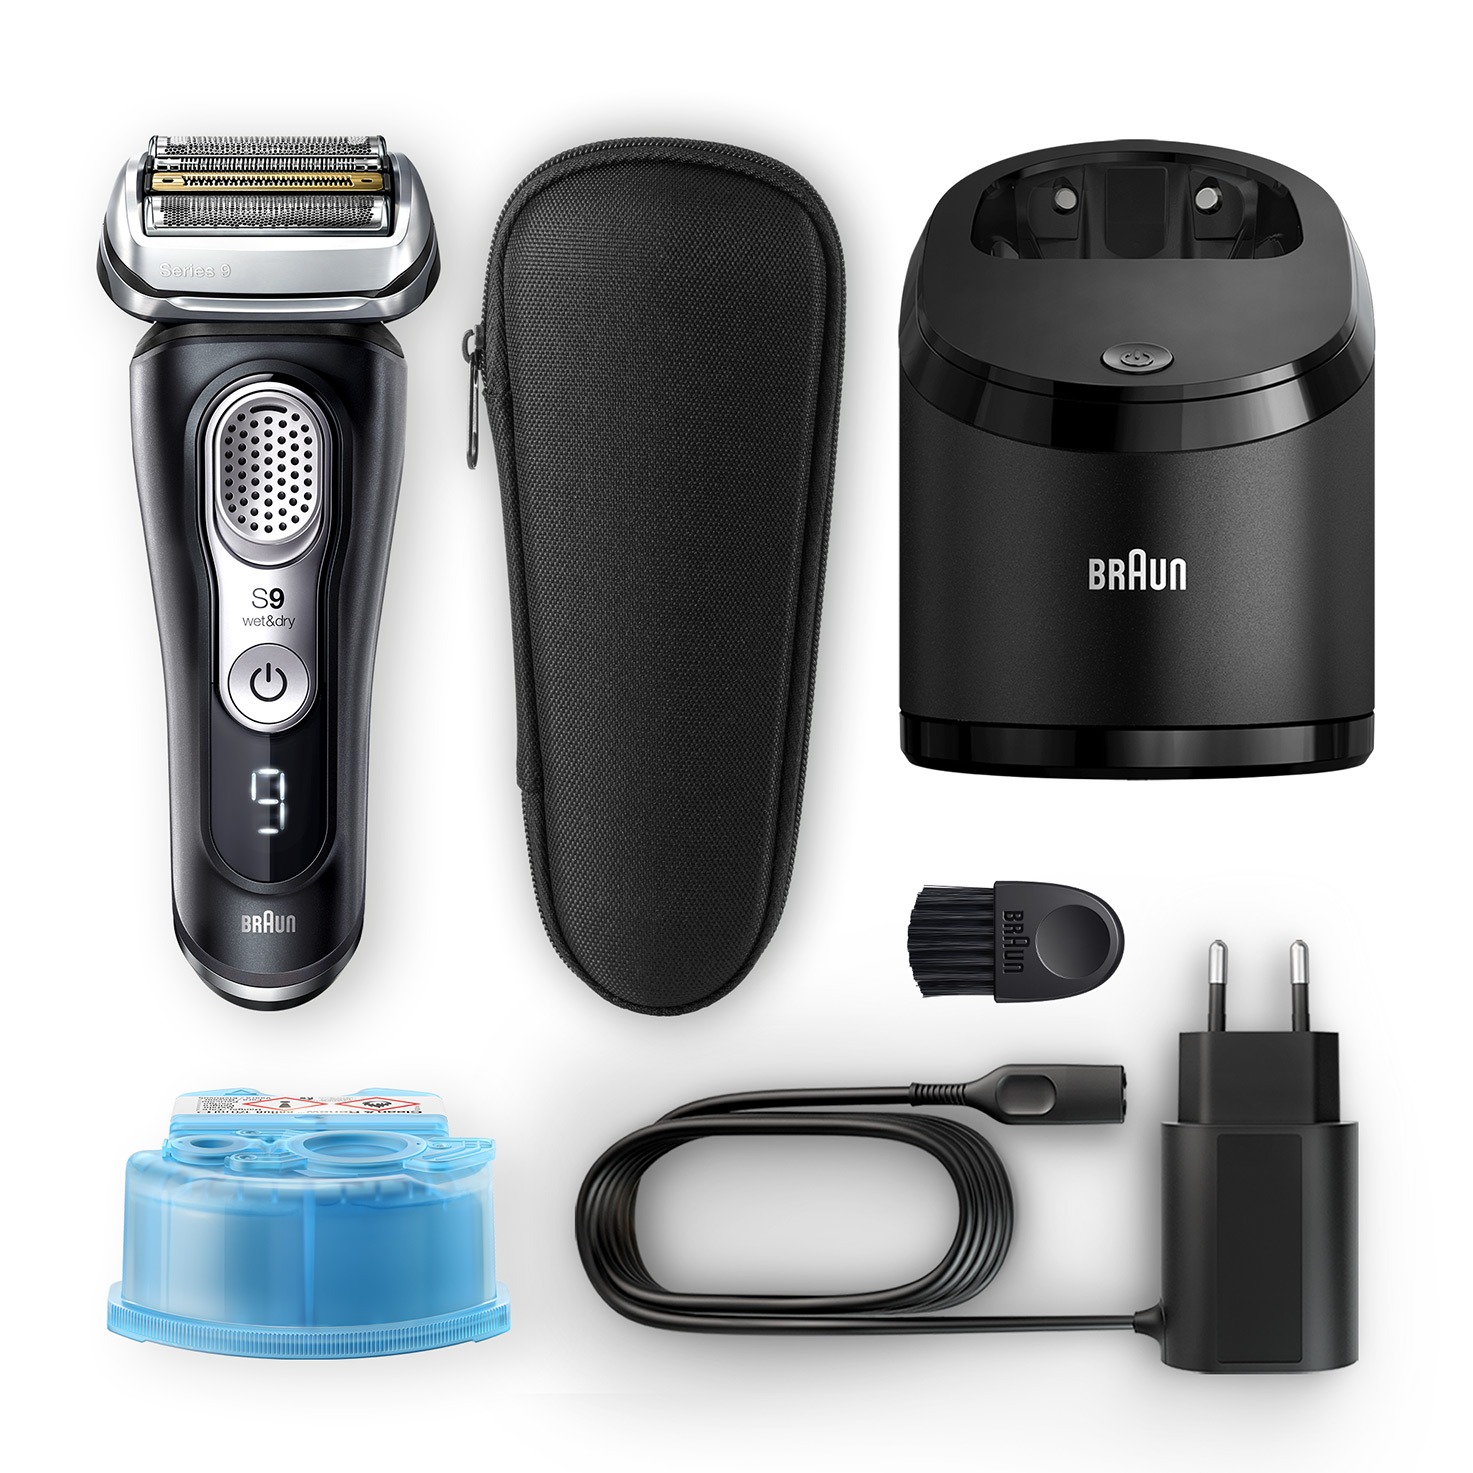 Series 9 9360cc shaver - What´s in the box